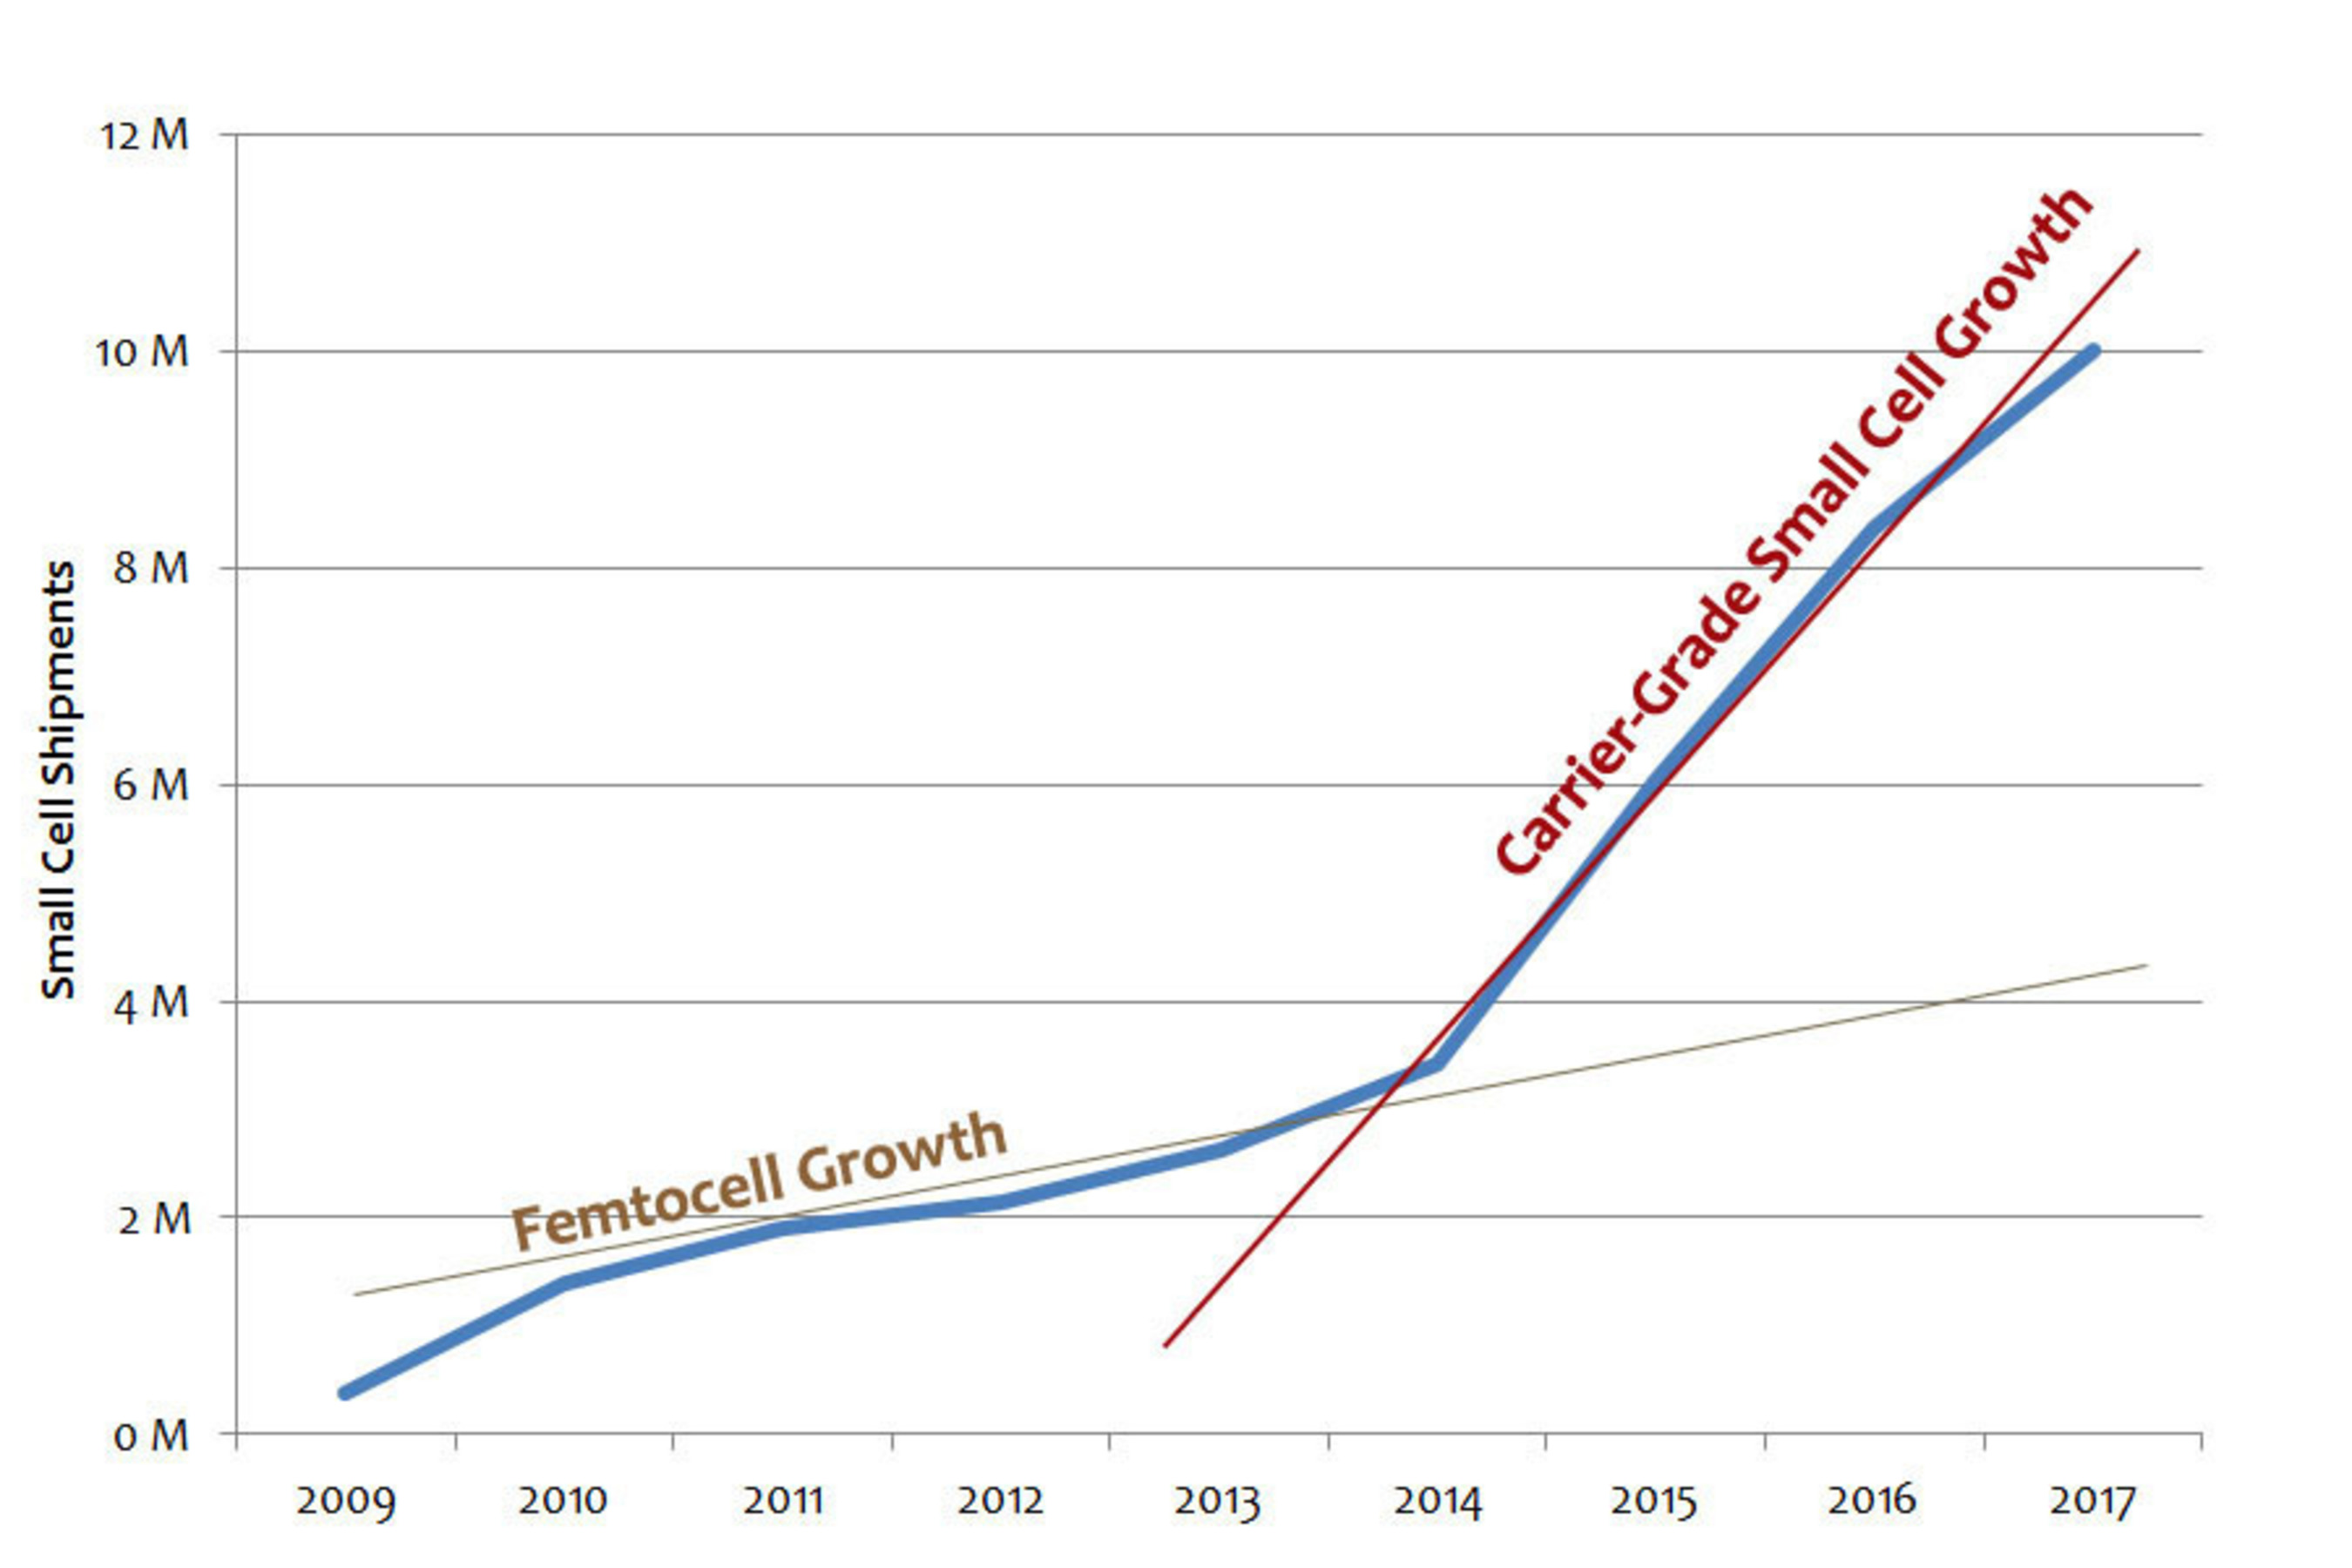 From 2009 to 2012, the small-cell market has been dominated by consumer femtocells, and the growth rate has been anemic, with weak support from mobile operators and little public awareness. From 2014 to 2017, Mobile Experts predicts a dramatic rise in small cell shipments with carrier deployment of small cells to address capacity growth requirements.  (PRNewsFoto/Mobile Experts LLC)